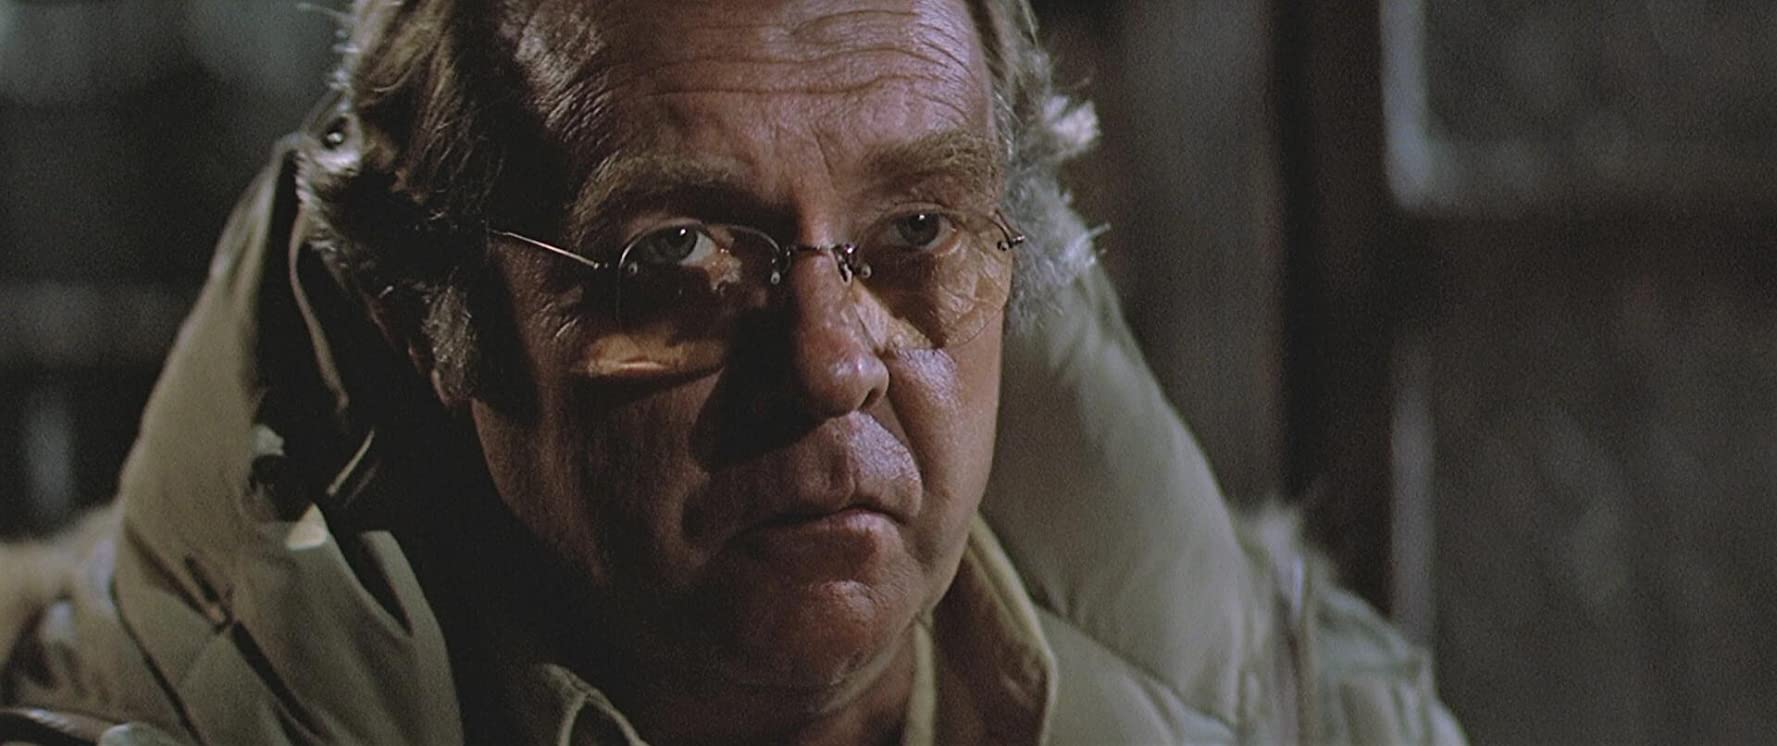 Wilford Brimley in The Thing (1982)